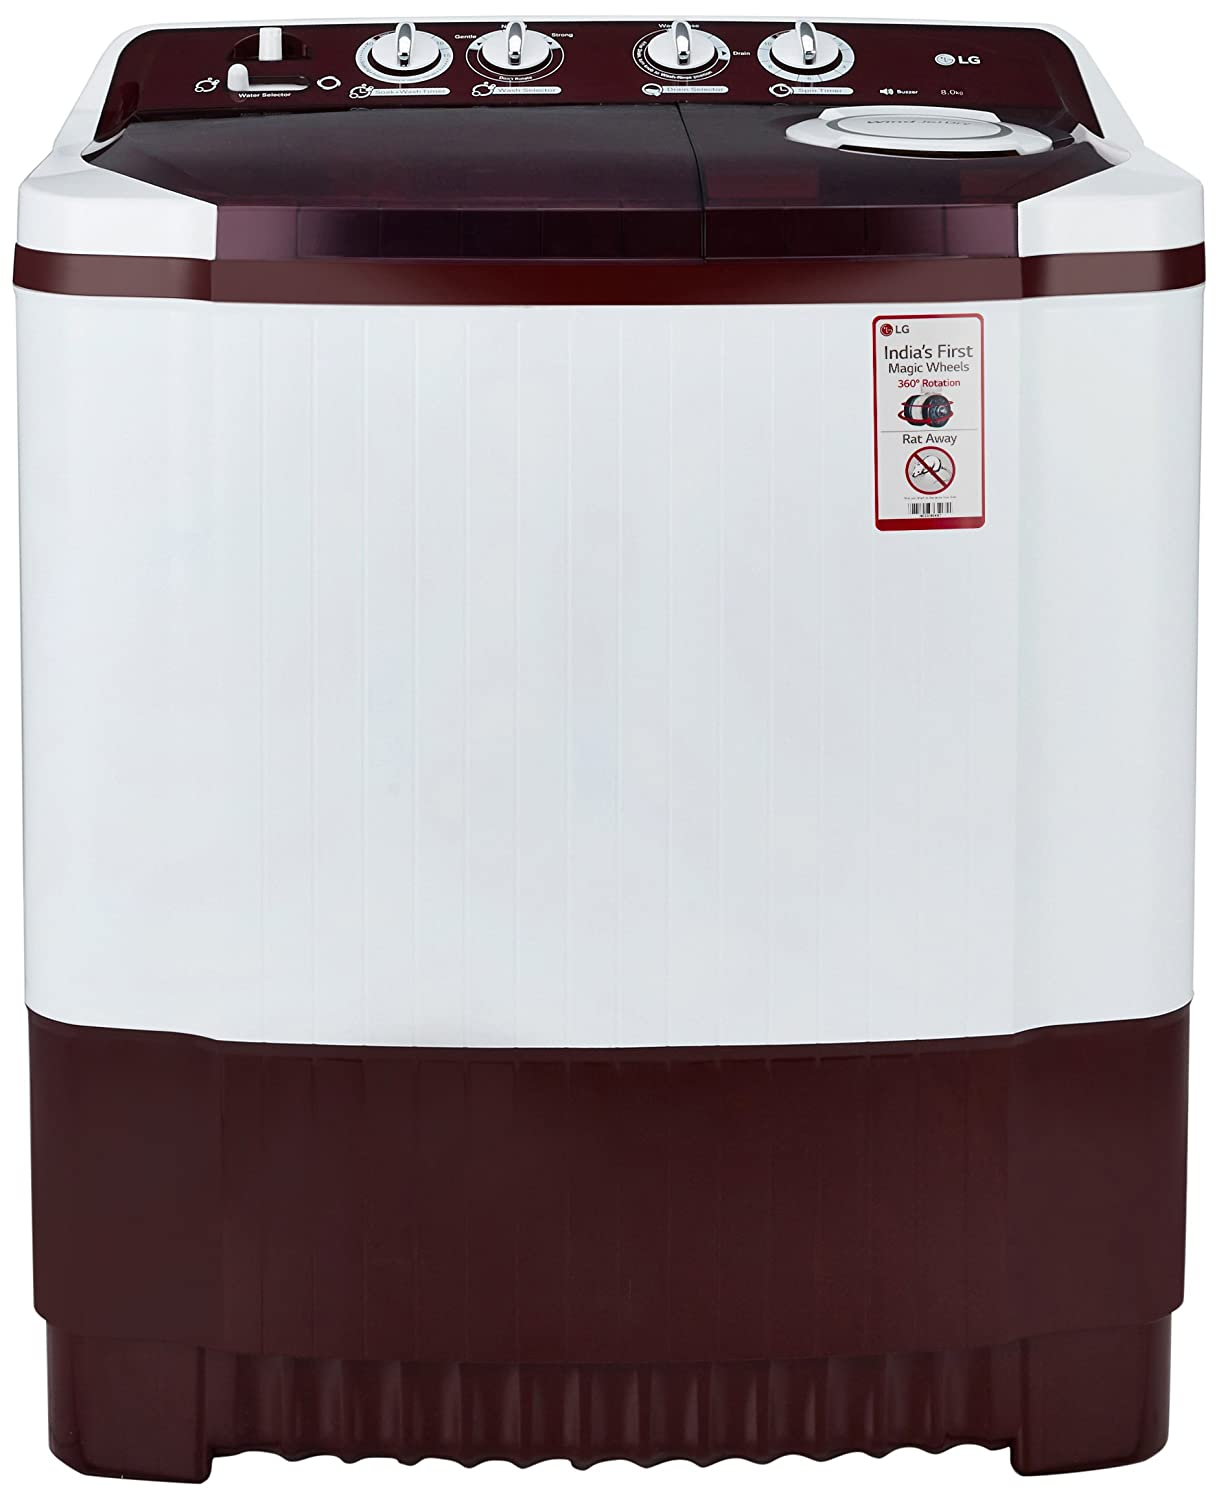 LG 8.0 kg Semi-Automatic Top Loading Washing Machine (P9042R3SM, Burgundy)